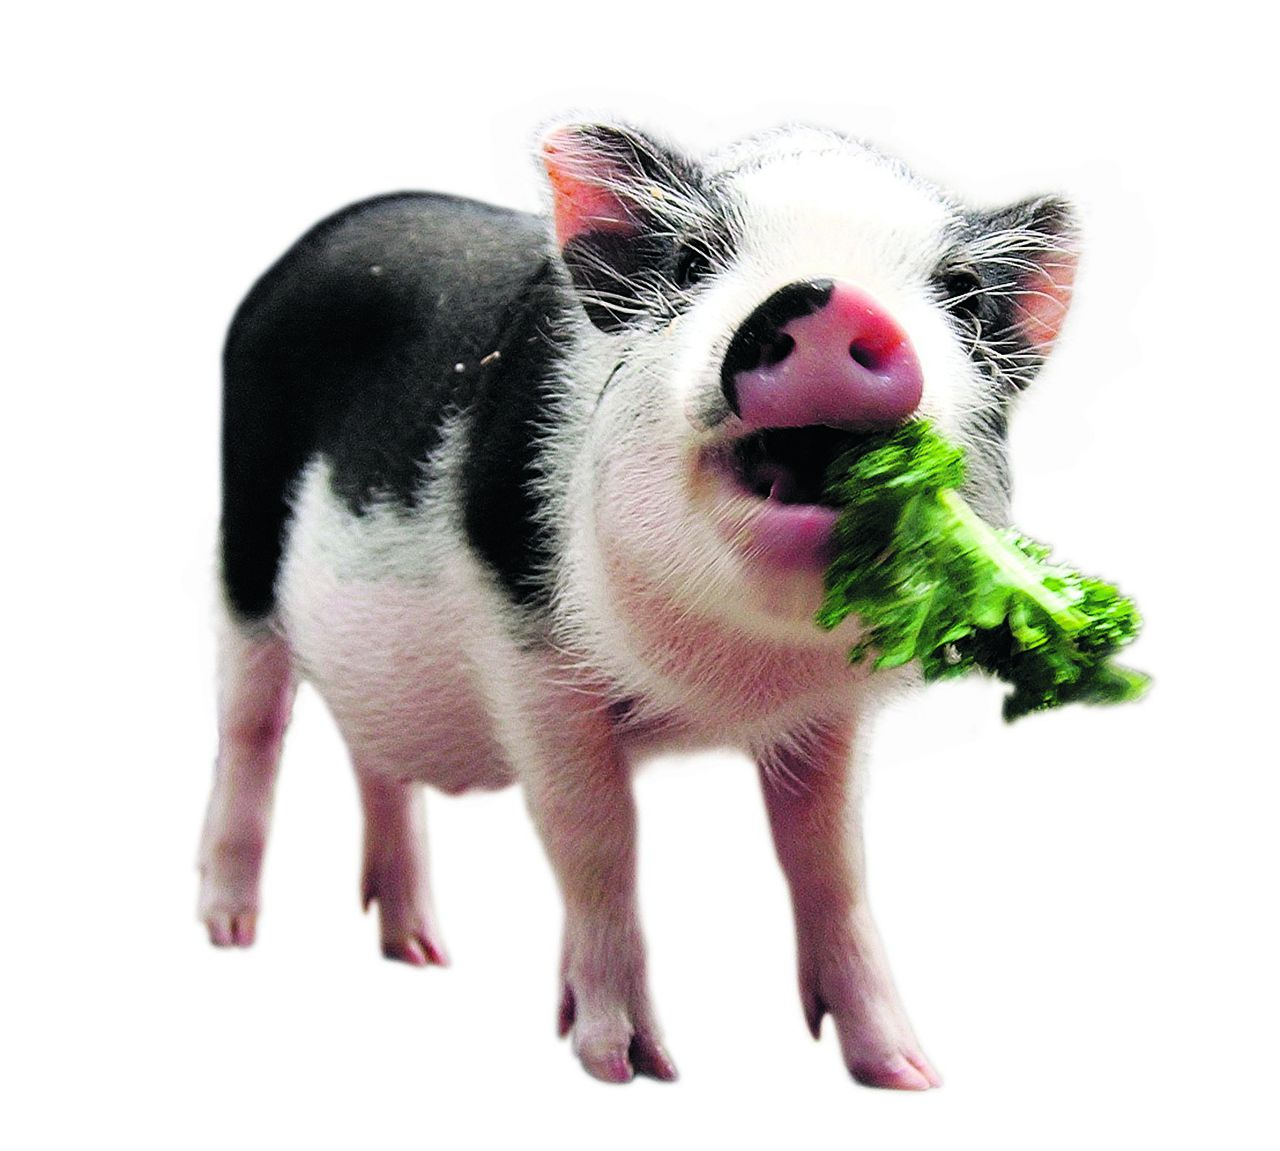 Vietnamese pot-bellied pig Otis eats a snack of kale as he and a second pot-bellied pig are introduced, 15 July, 2004, at the Central Park Children's Zoo in New York. The three-month old pot-bellied pigs were acquired from a farm in New York State. AFP PHOTO/Stan HONDA